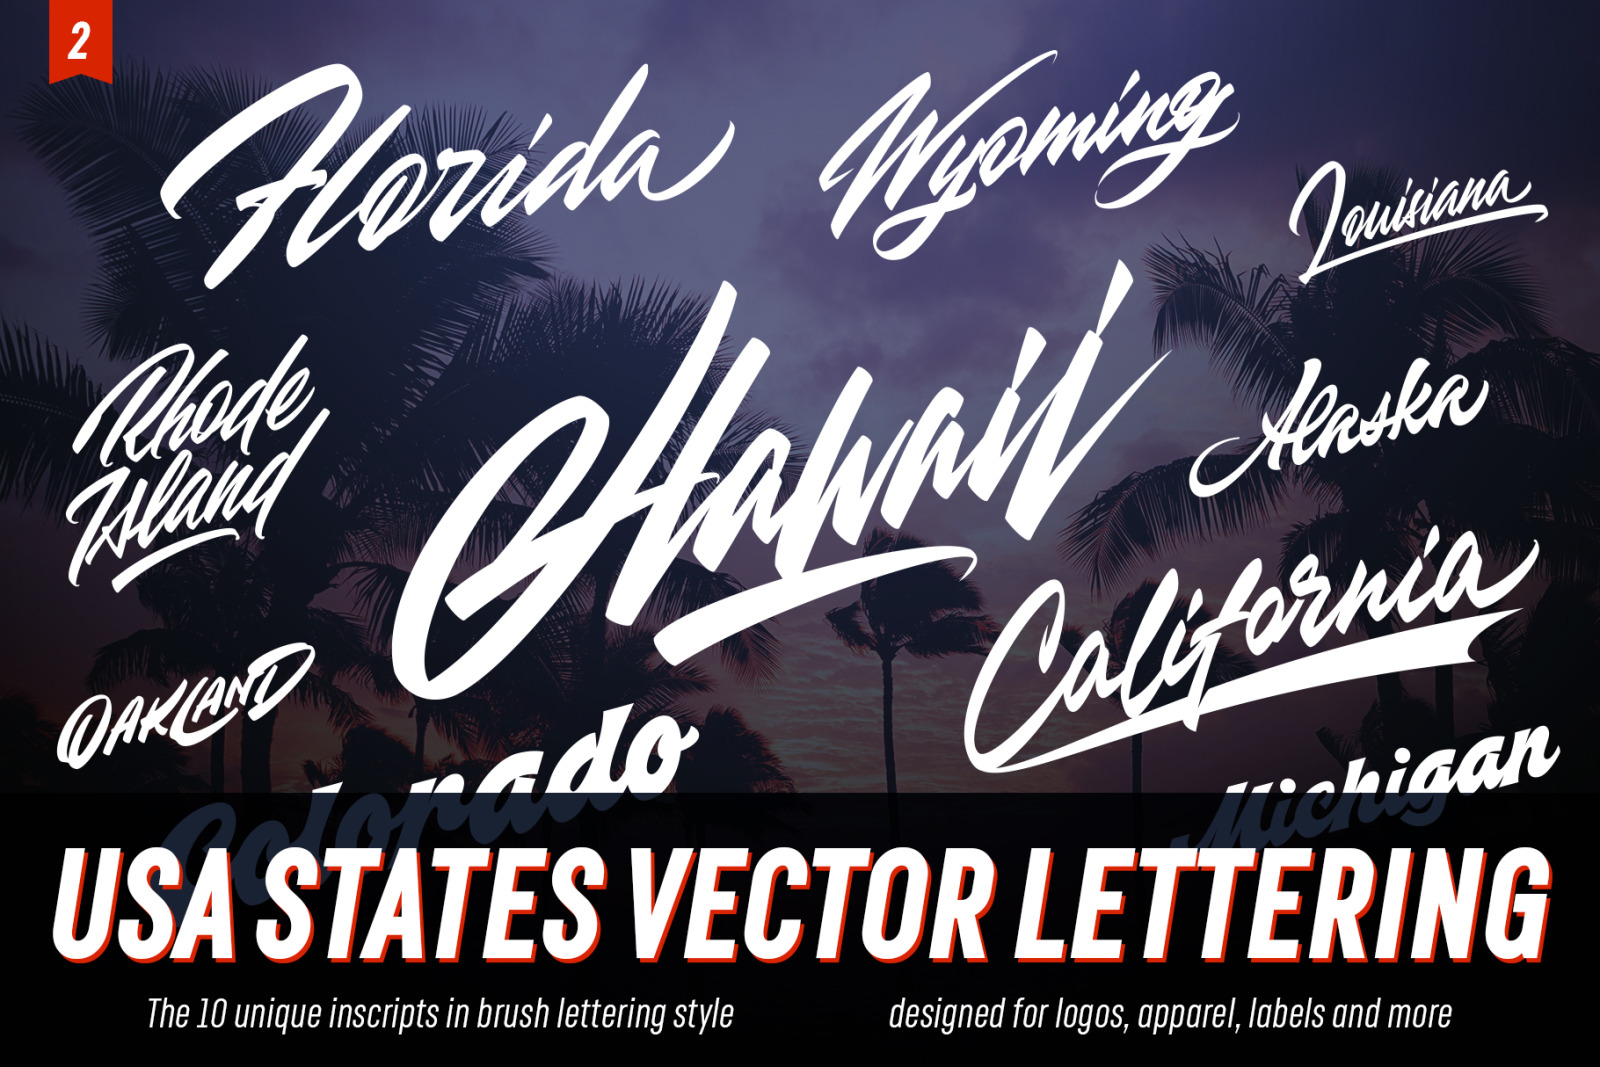 USA states vector lettering elements